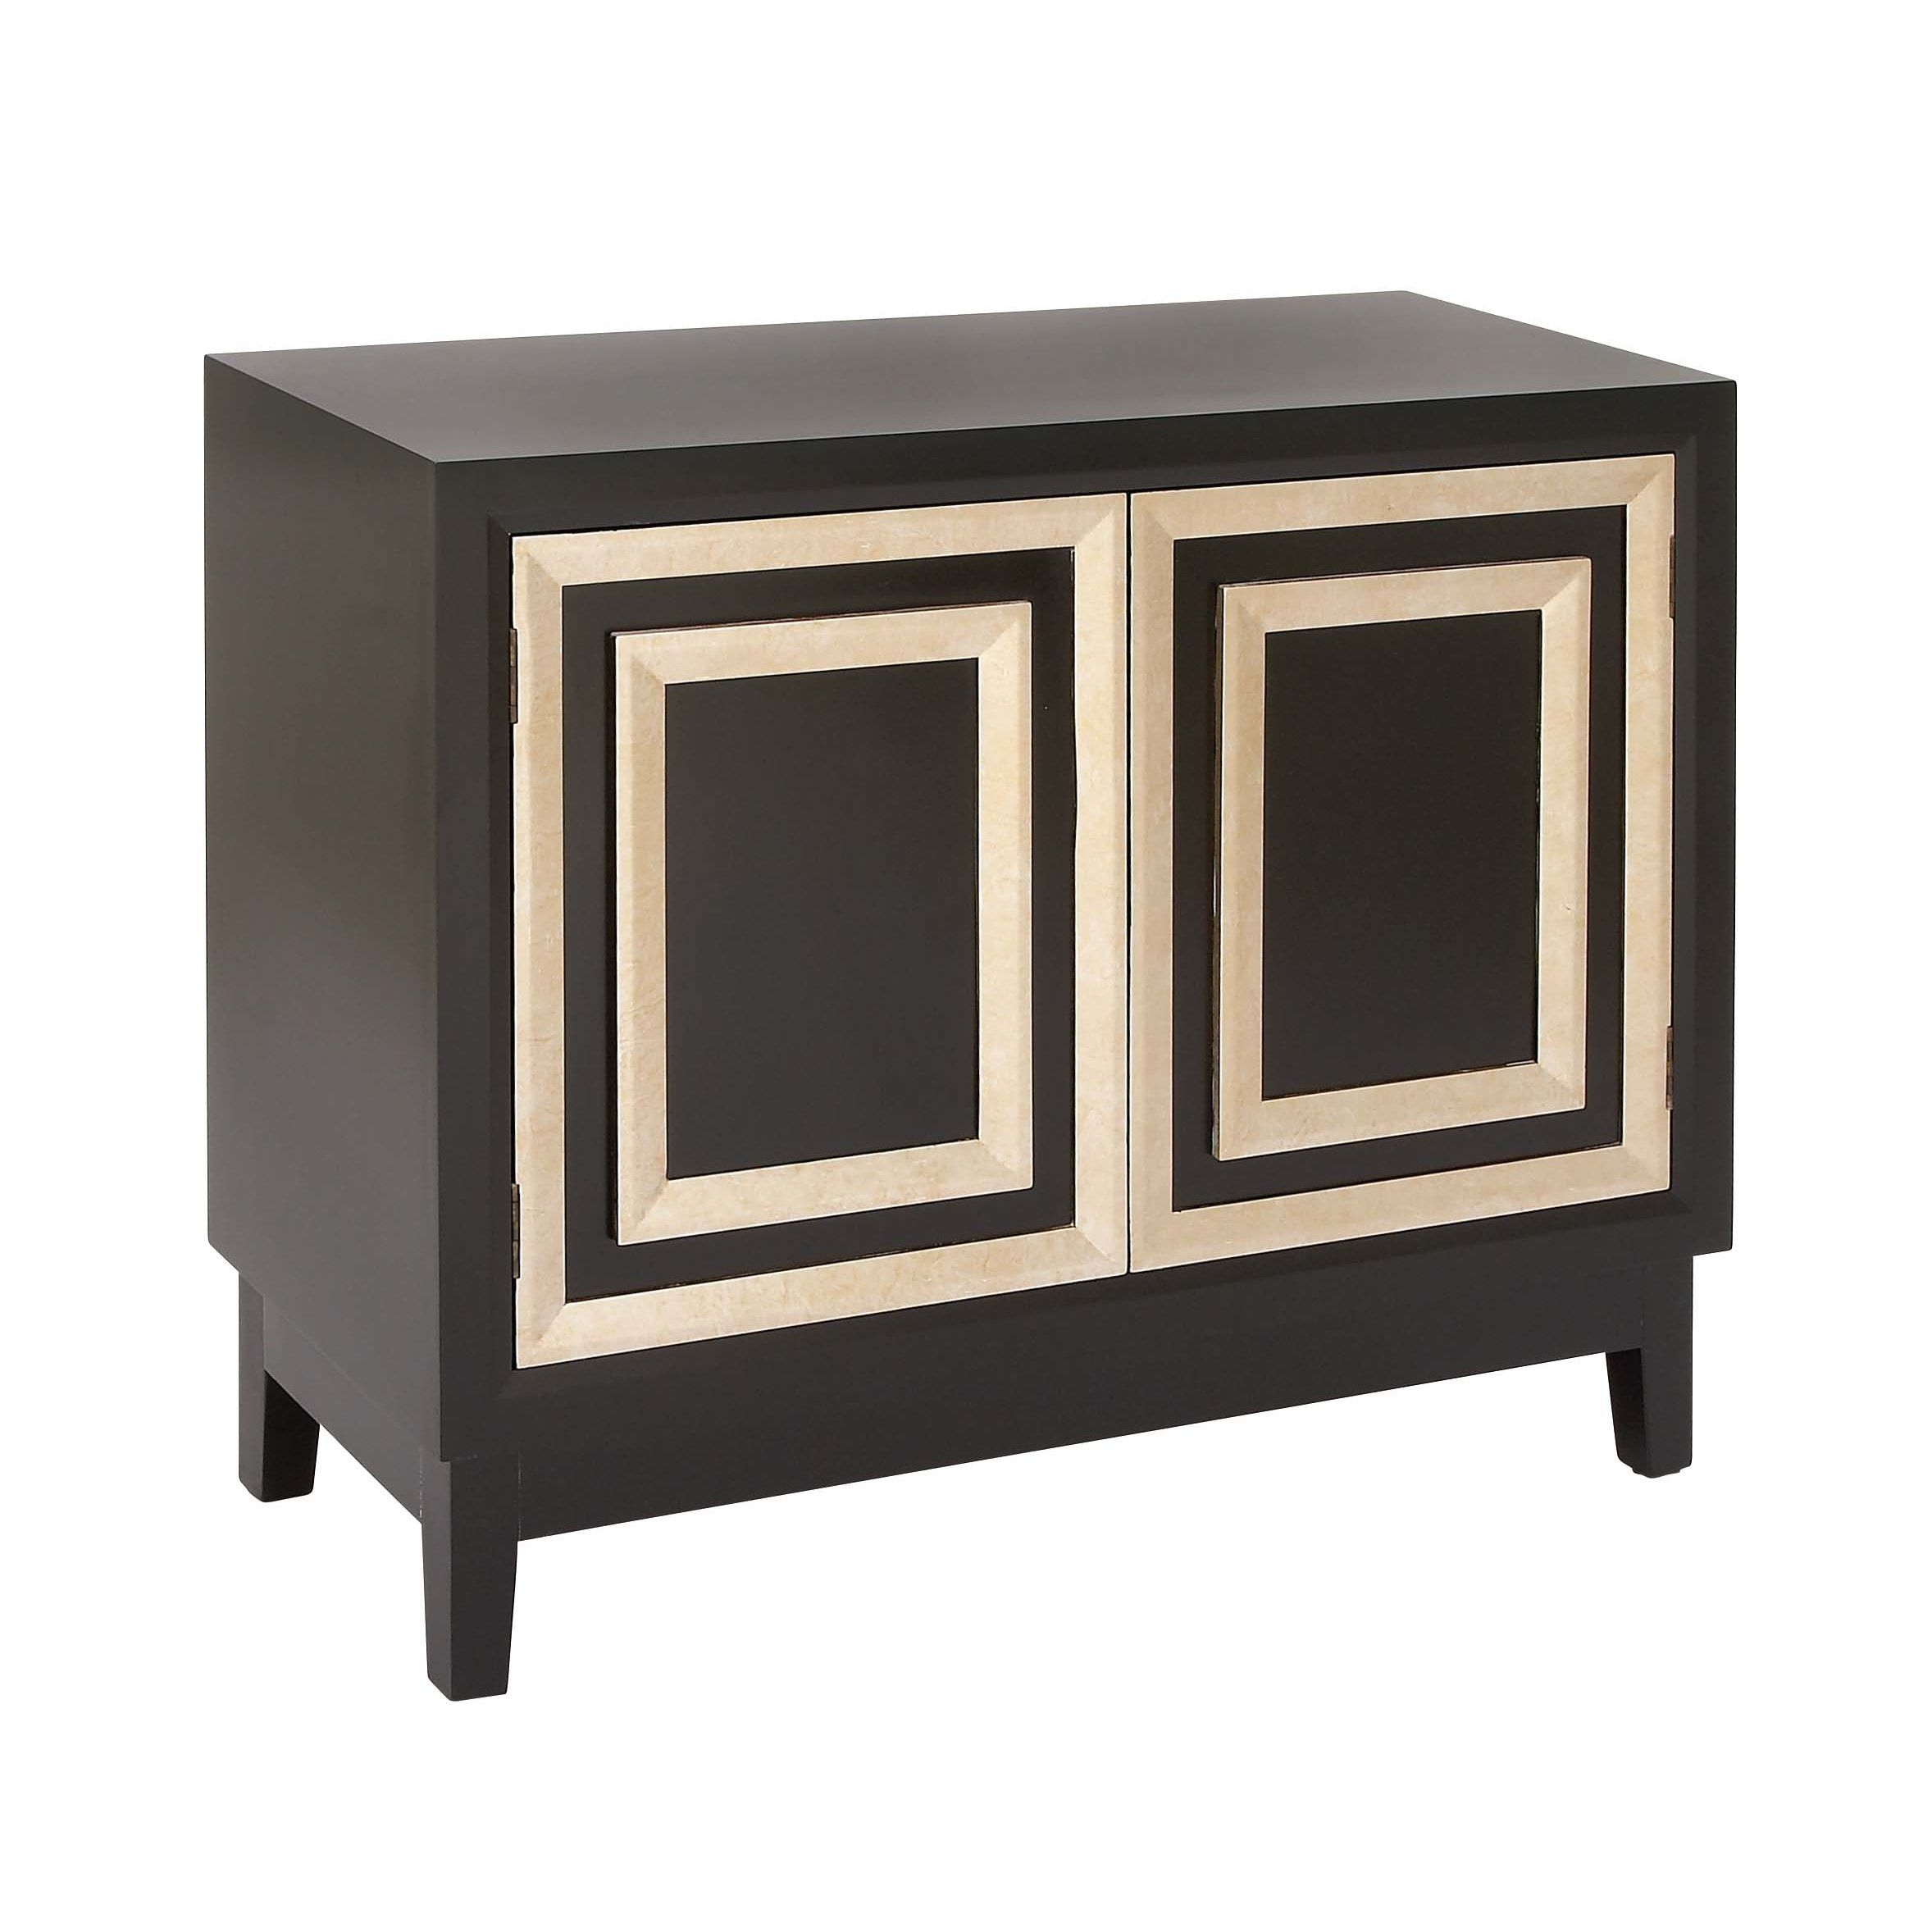 Cole Grey Kevin Accent Cabinet Accent Cabinet Stylish Cabinet Accent Chests And Cabinets